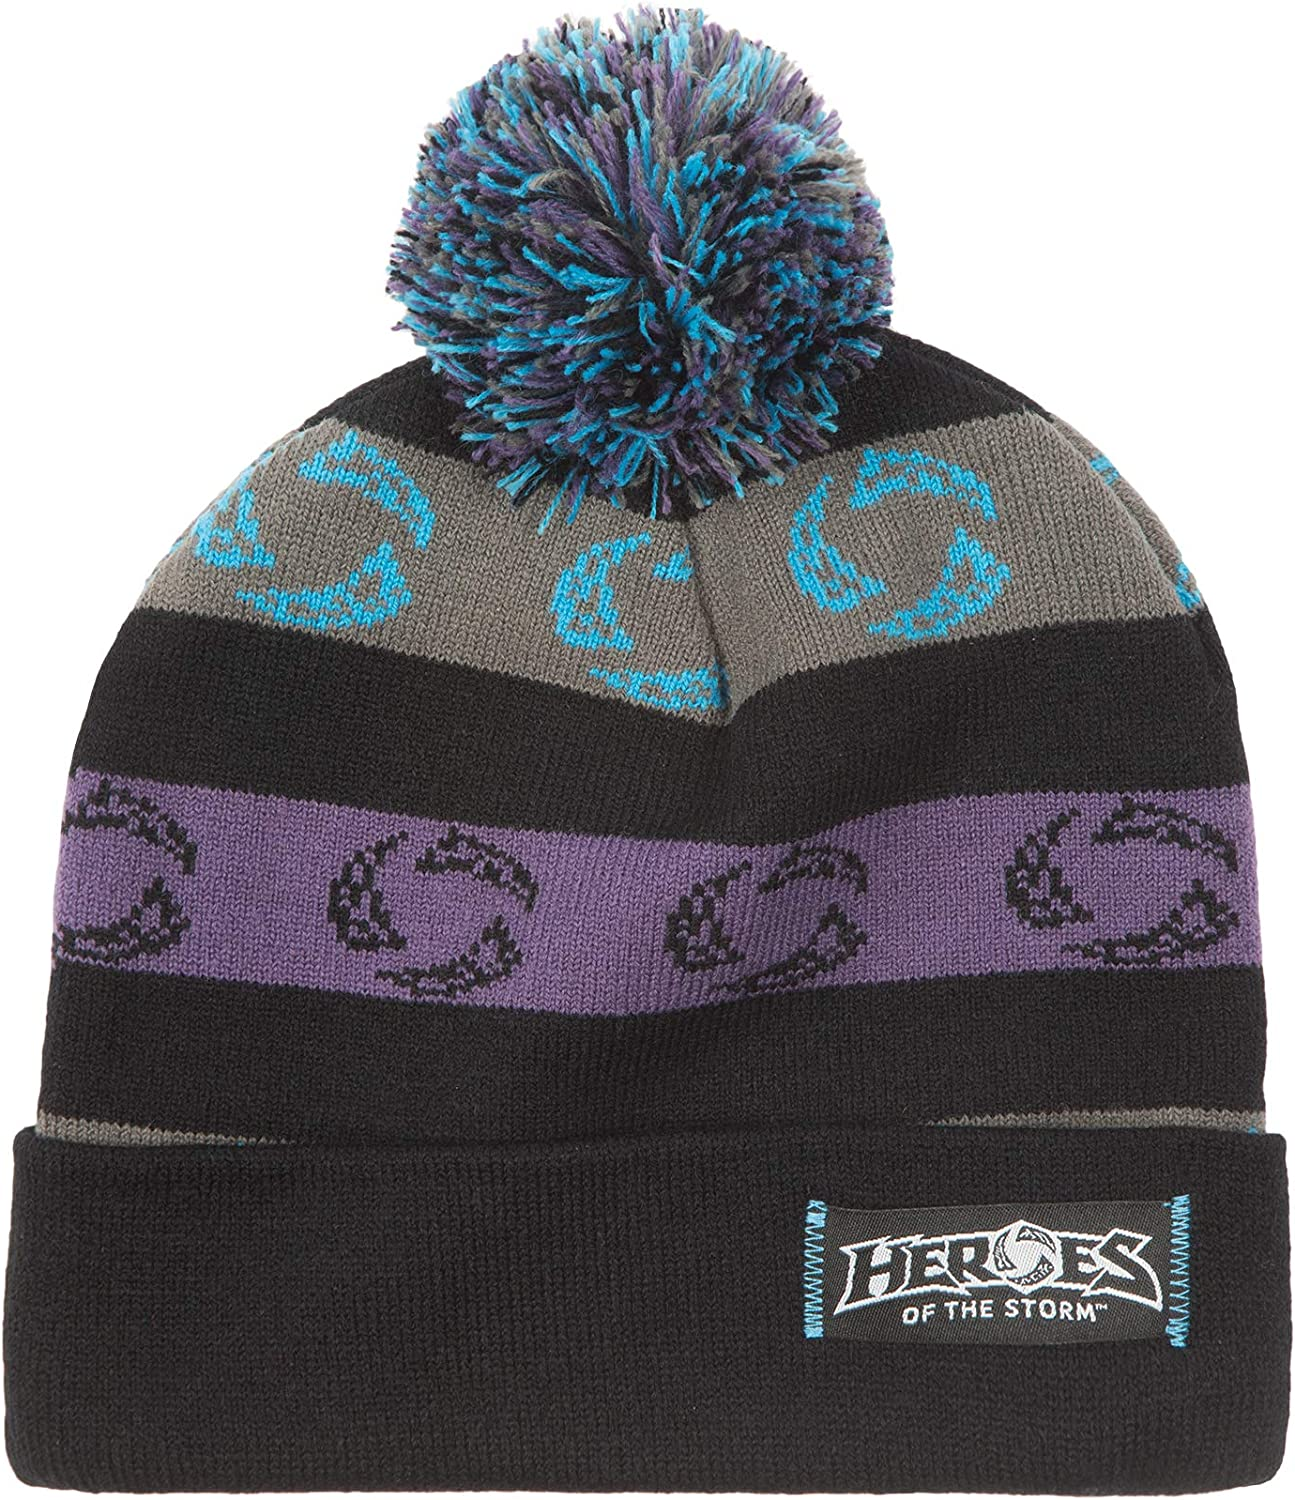 JINX Heroes of The Storm Popularity Brand Cheap Sale Venue Multi-Col Pom Knit Beanie Winmore